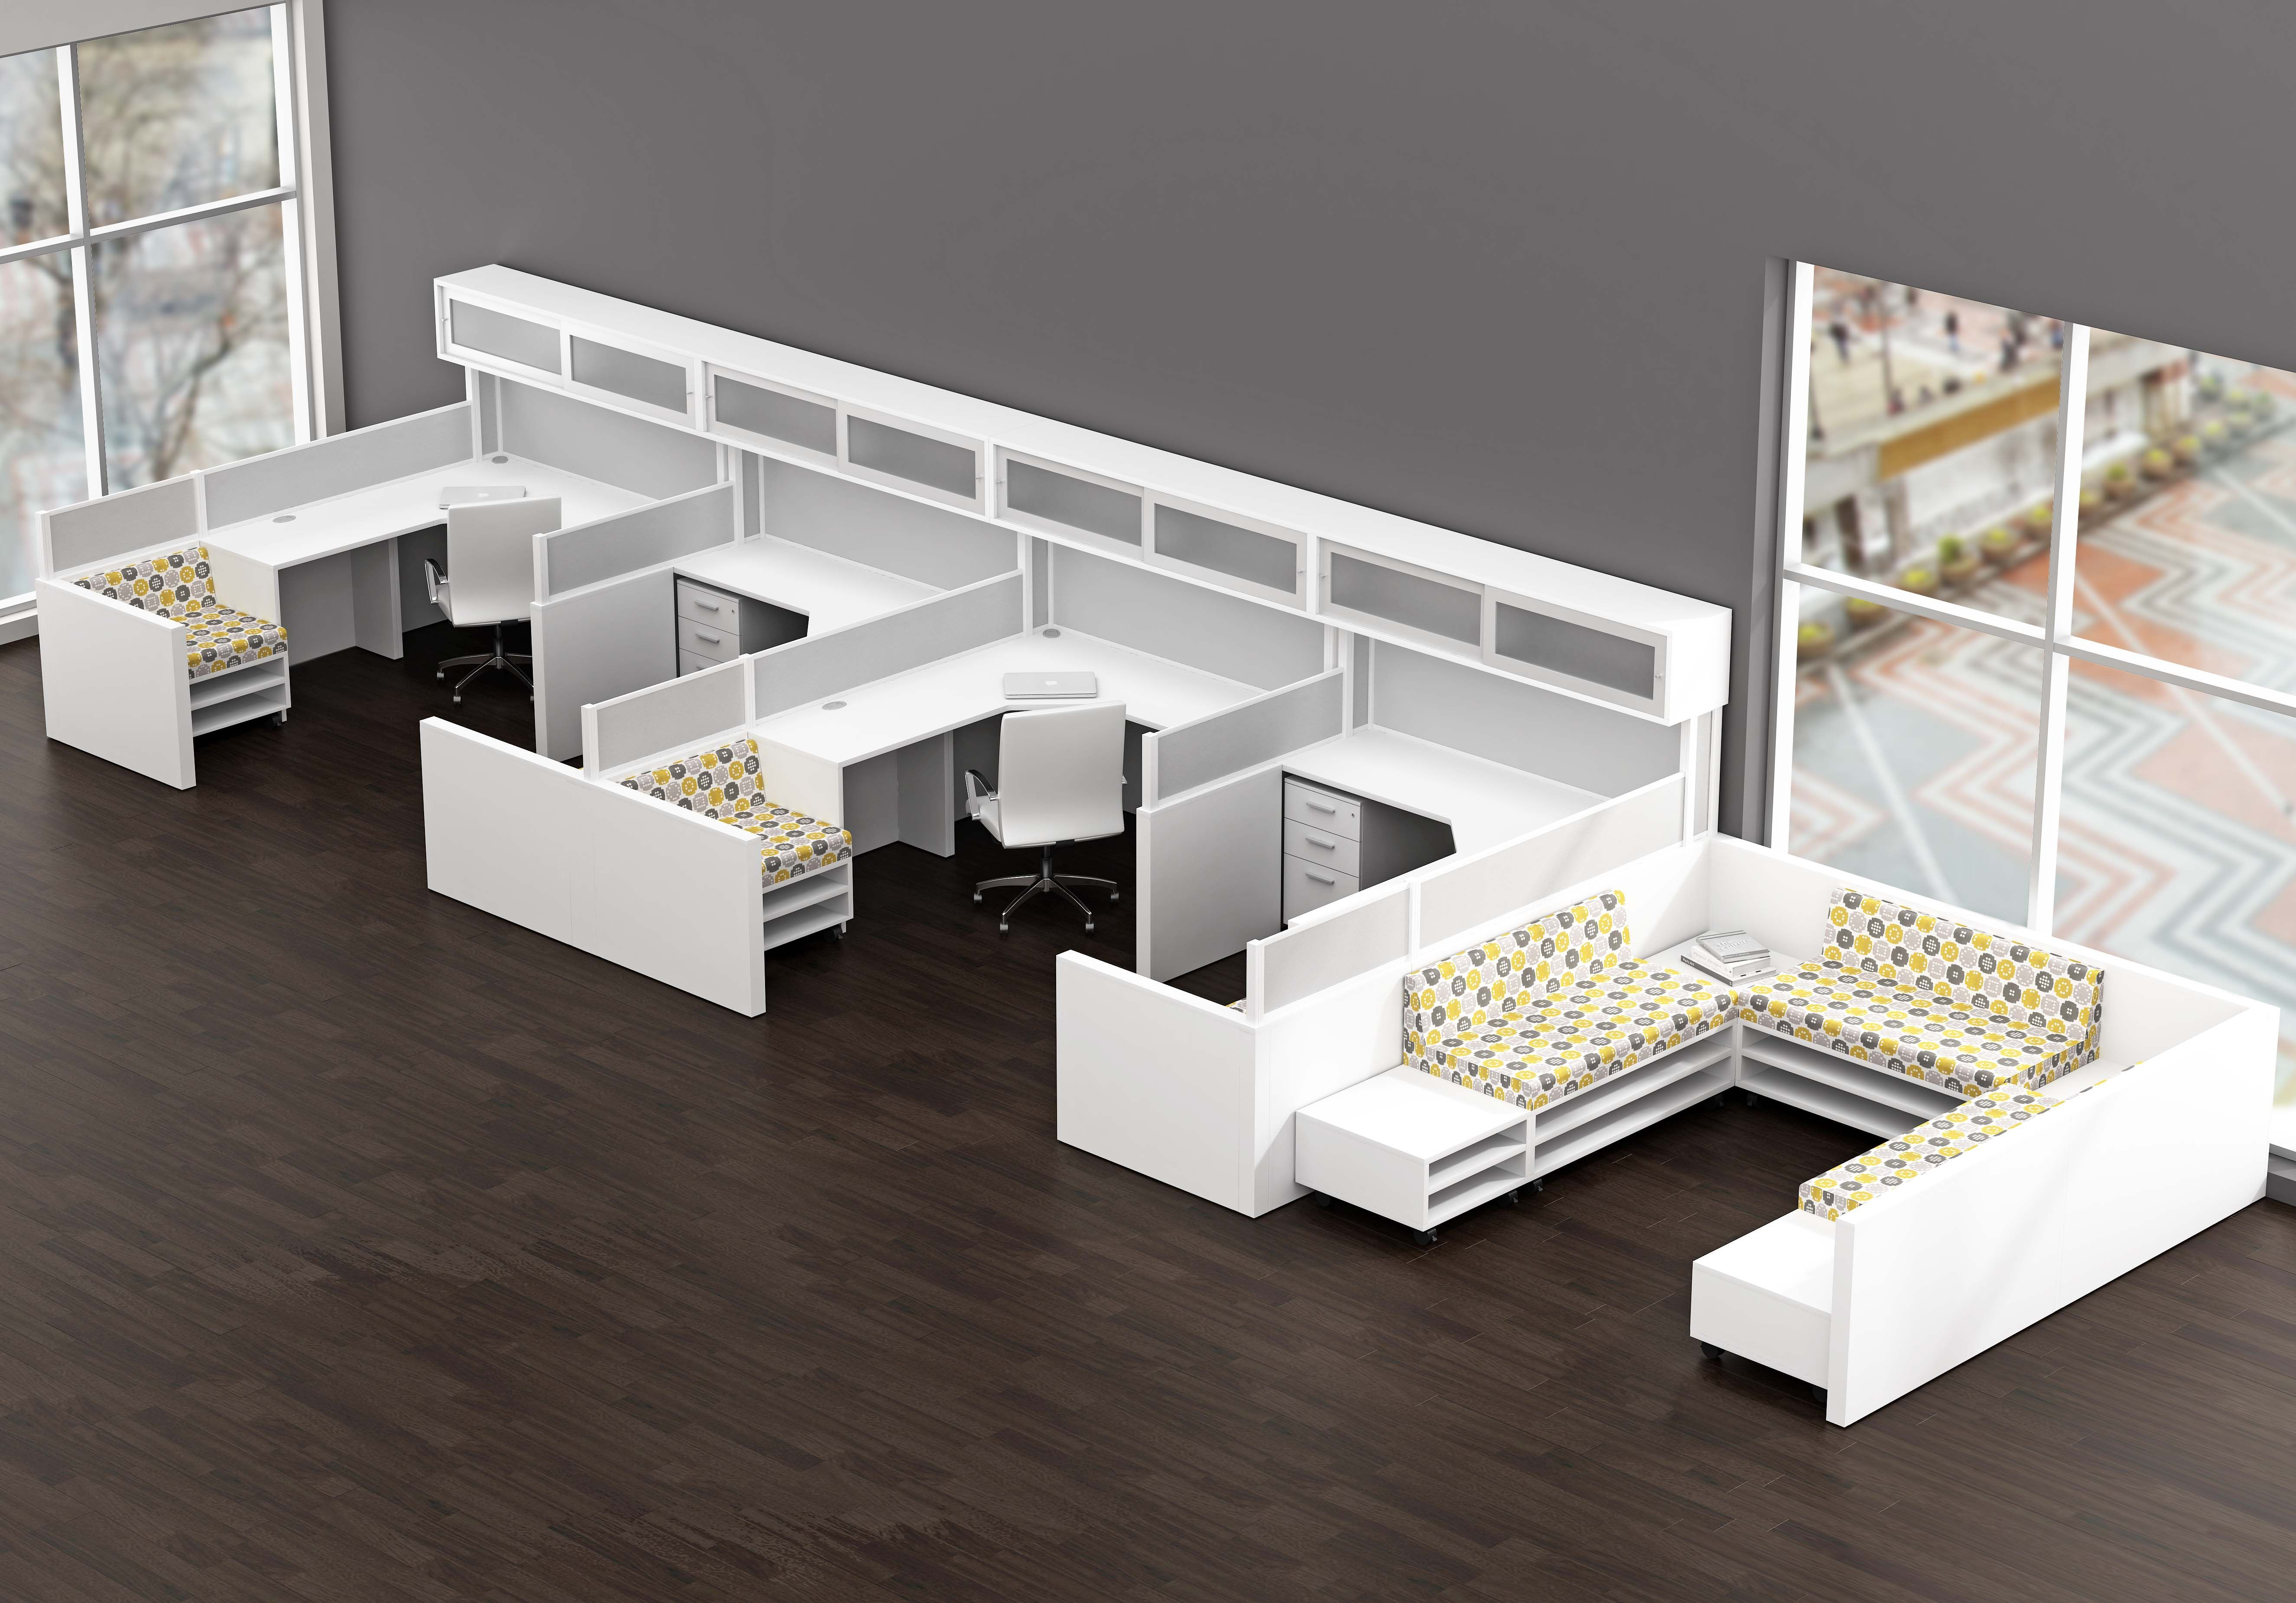 Free standing open plan workstations that do not use for Open plan office design